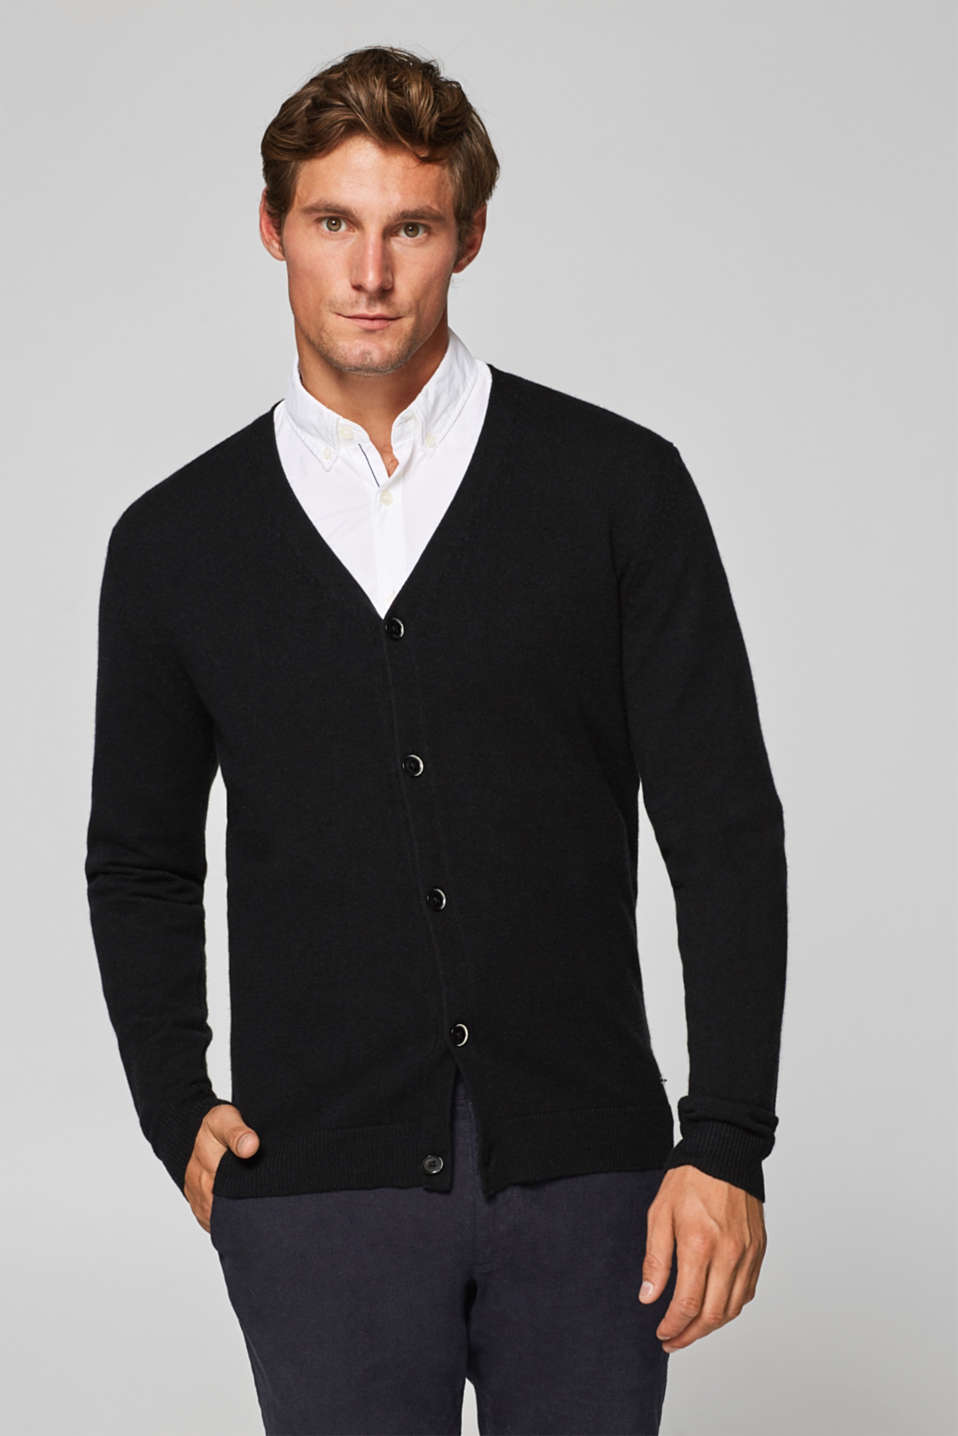 Esprit - A cashmere/wool blend: V-neck cardigan